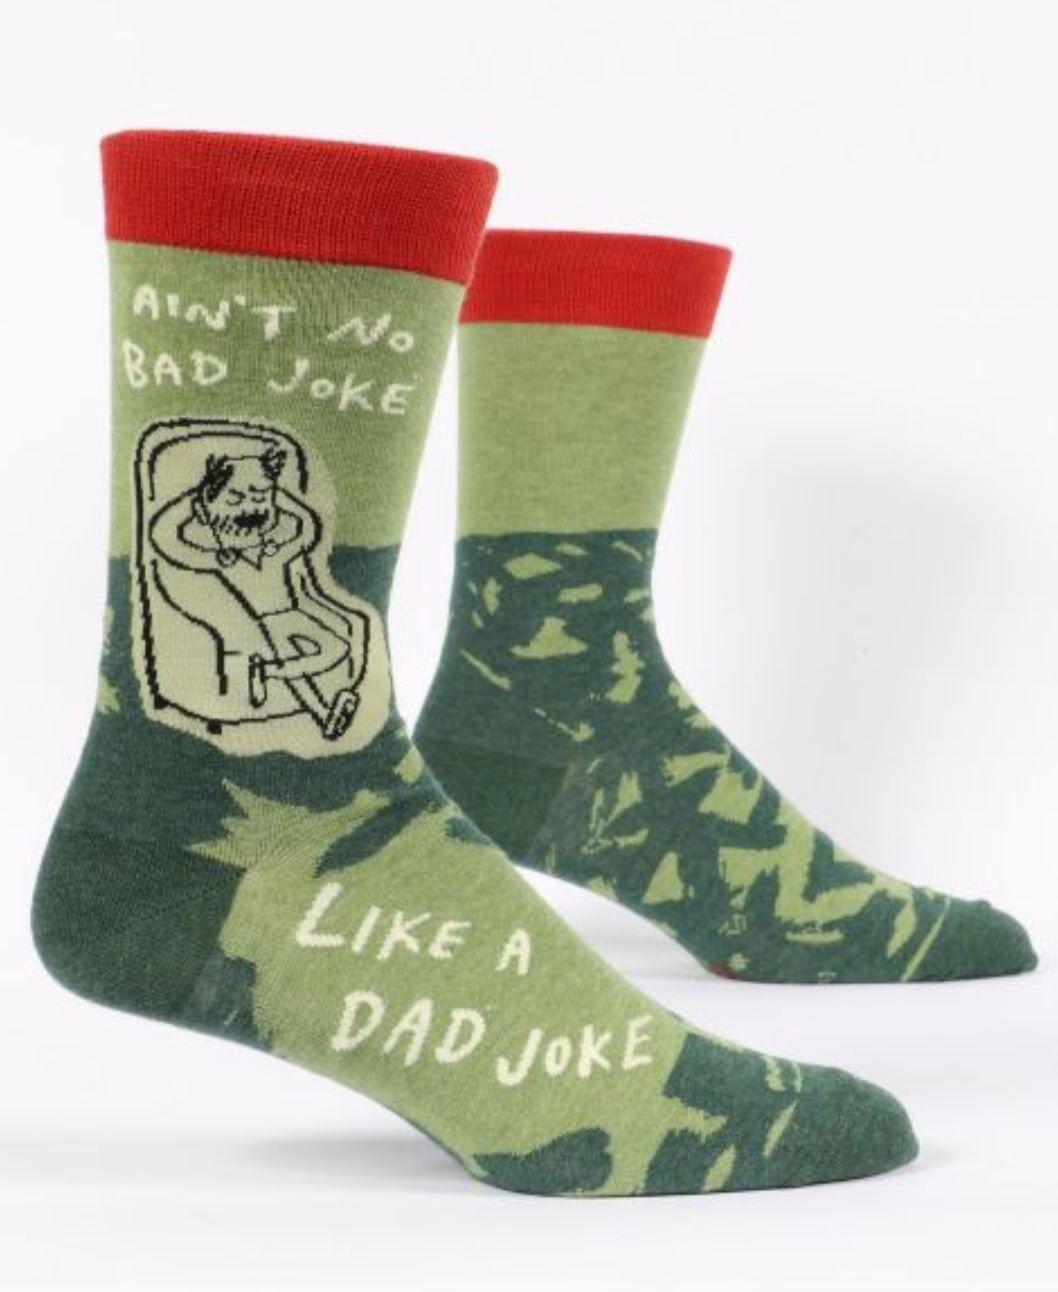 Blue Q Ain't No Bad Joke Like a Dad Joke Men's Crew Socks